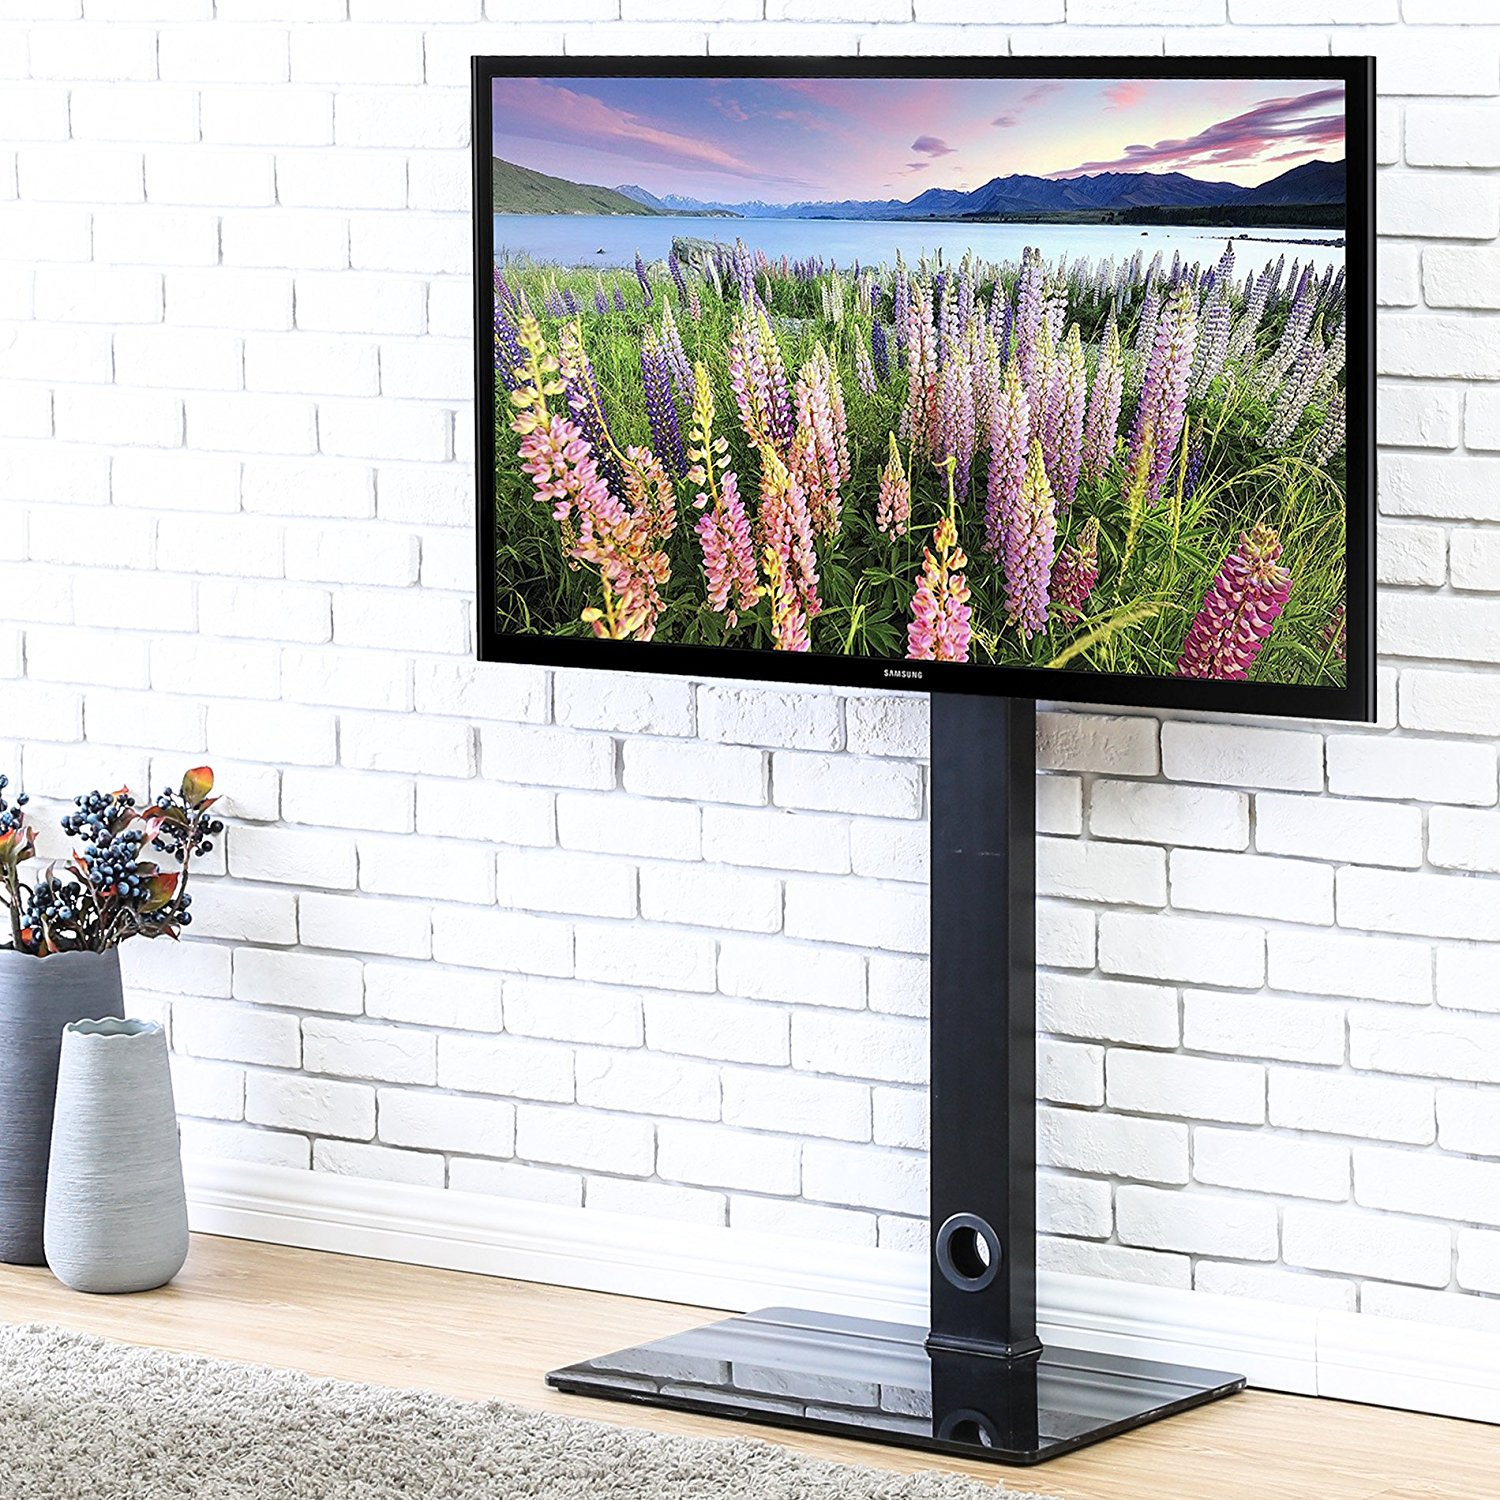 Fitueyes Tv Stand With Swivel Mount For Up To 55 Inch